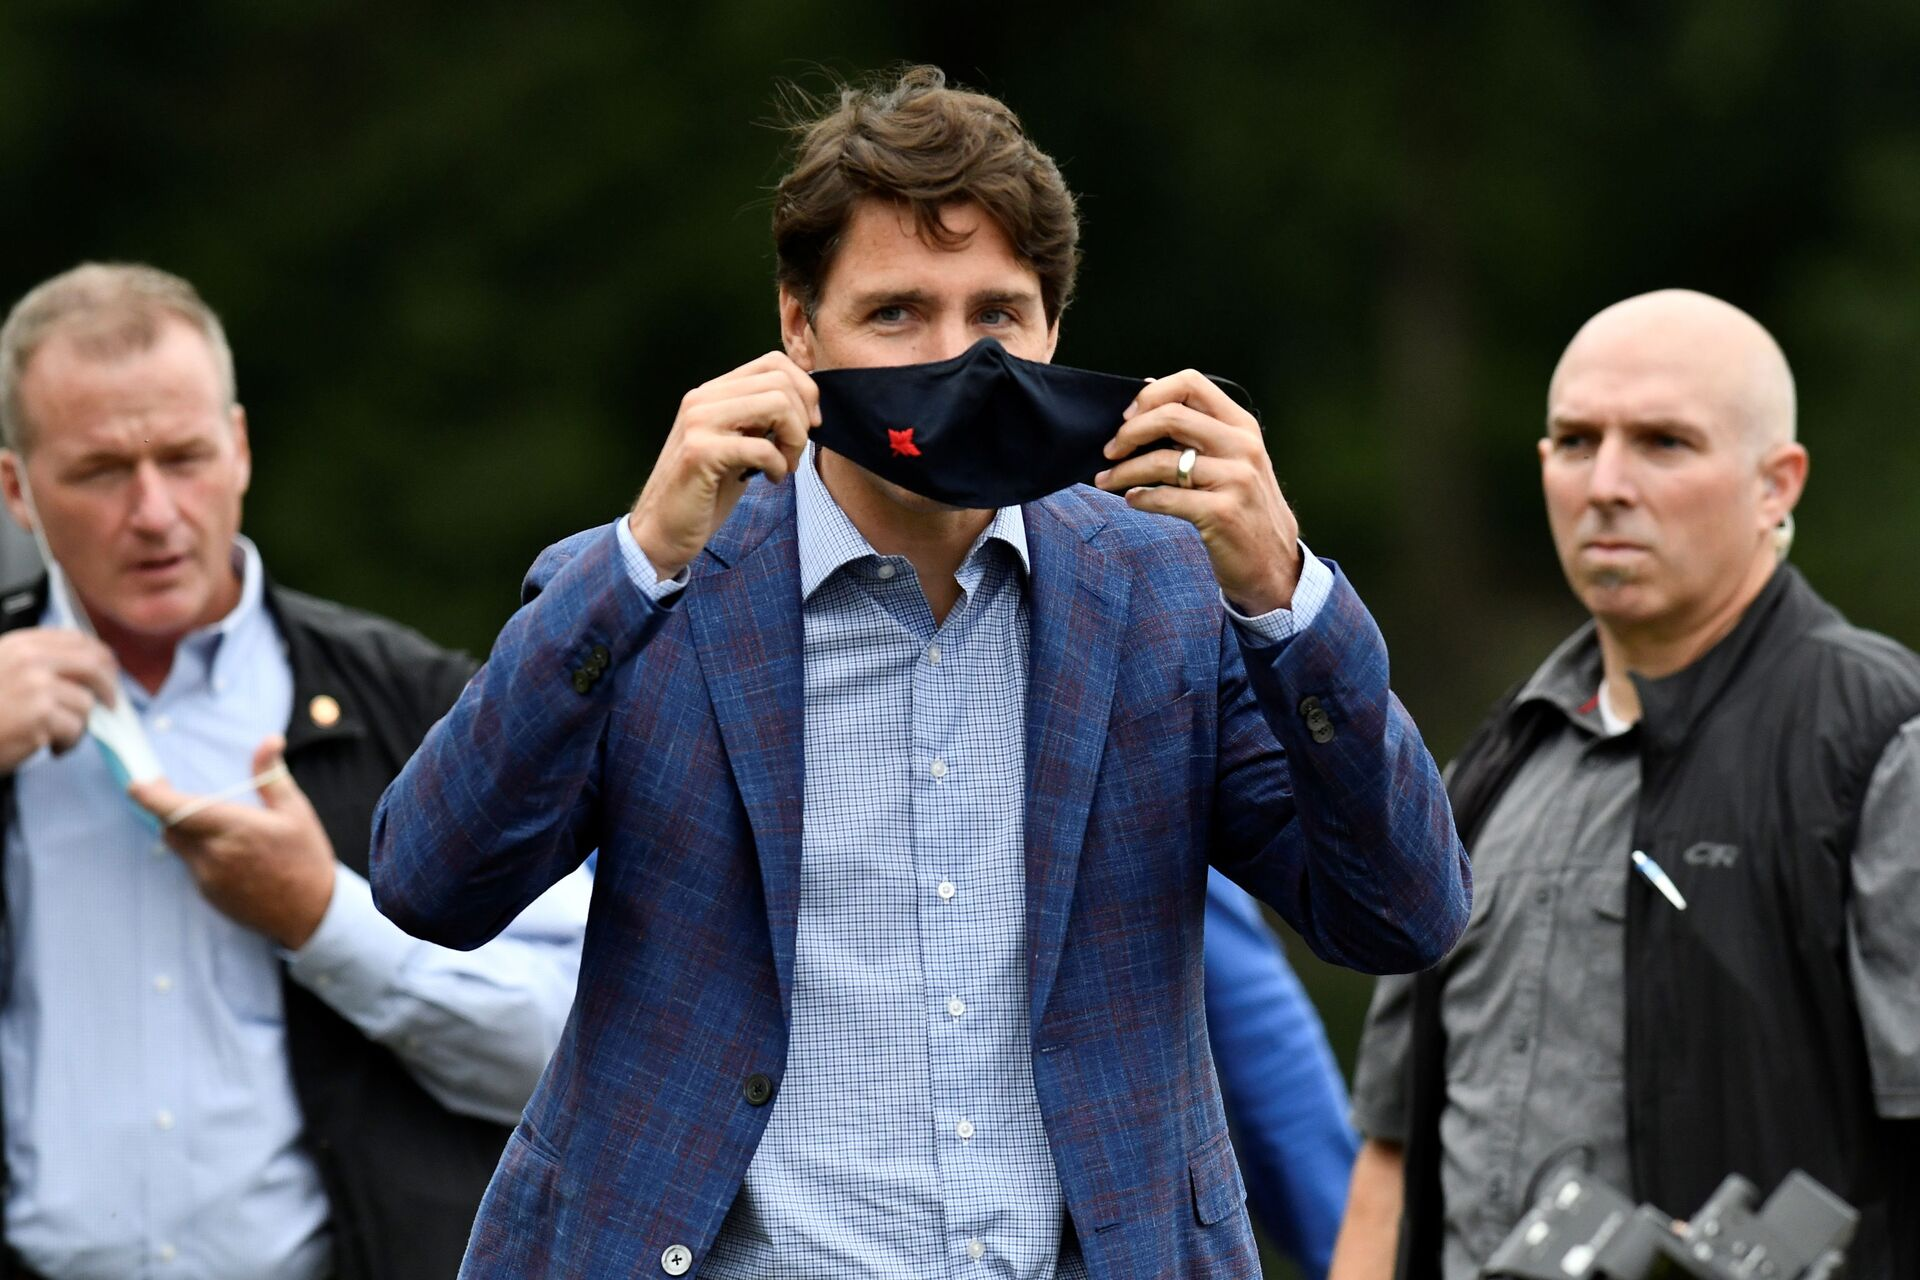 Canada's Prime Minister Justin Trudeau puts on a face mask at Town Centre Park in Coquitlam, British Columbia, Canada July 8, 2021. - Sputnik International, 1920, 15.09.2021